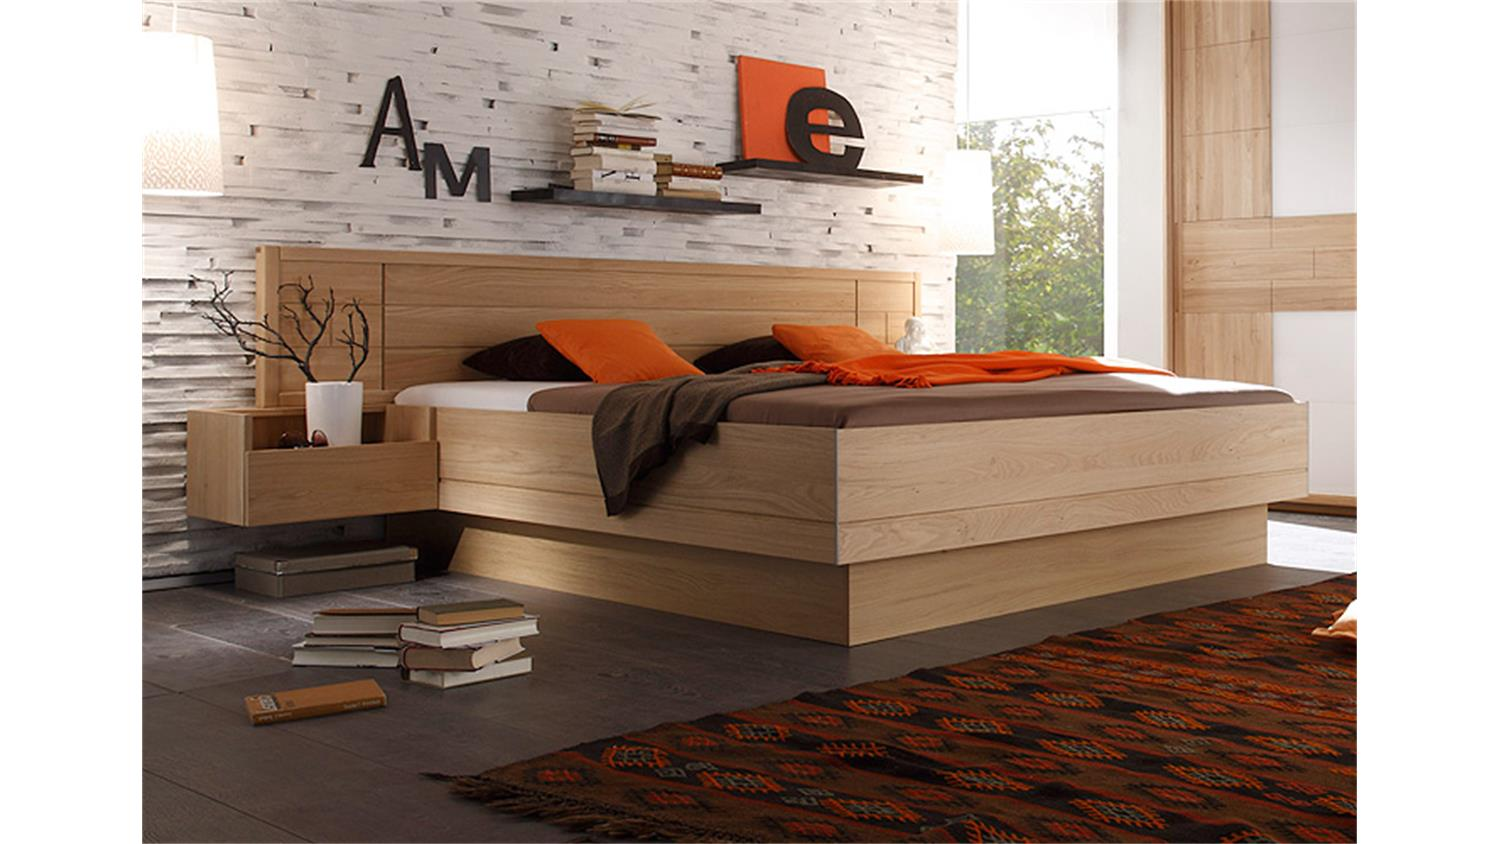 bettanlage vigo bett in eiche teilmassiv mit nachtkonsolen 180x200. Black Bedroom Furniture Sets. Home Design Ideas